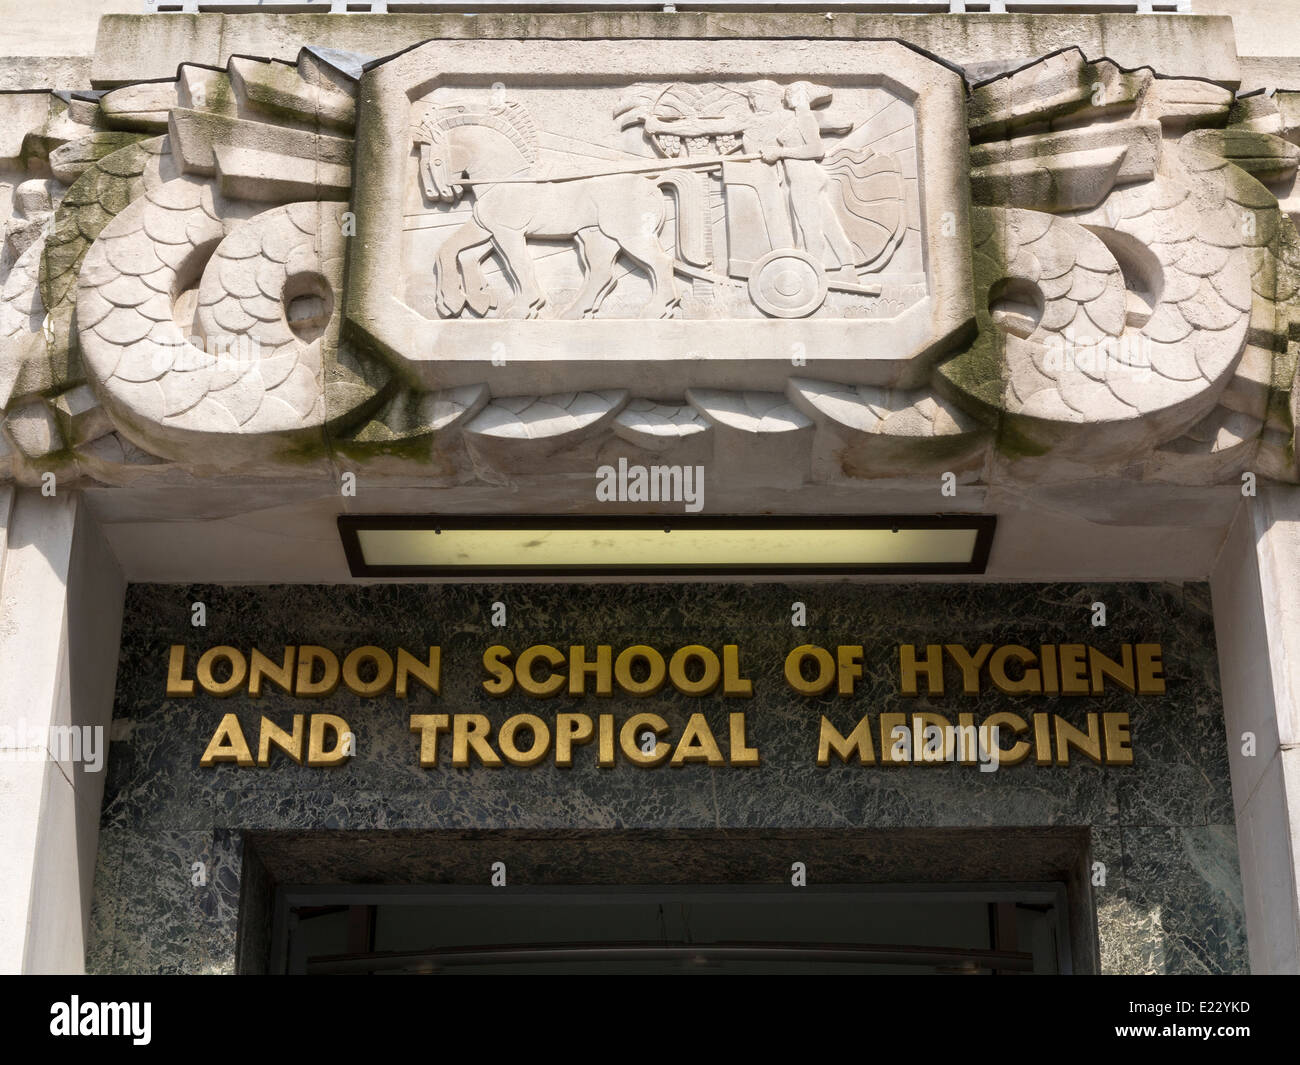 A carving of Apollo and Artemis riding a chariot above the main entrance of the London School of Hygiene & Tropical - Stock Image